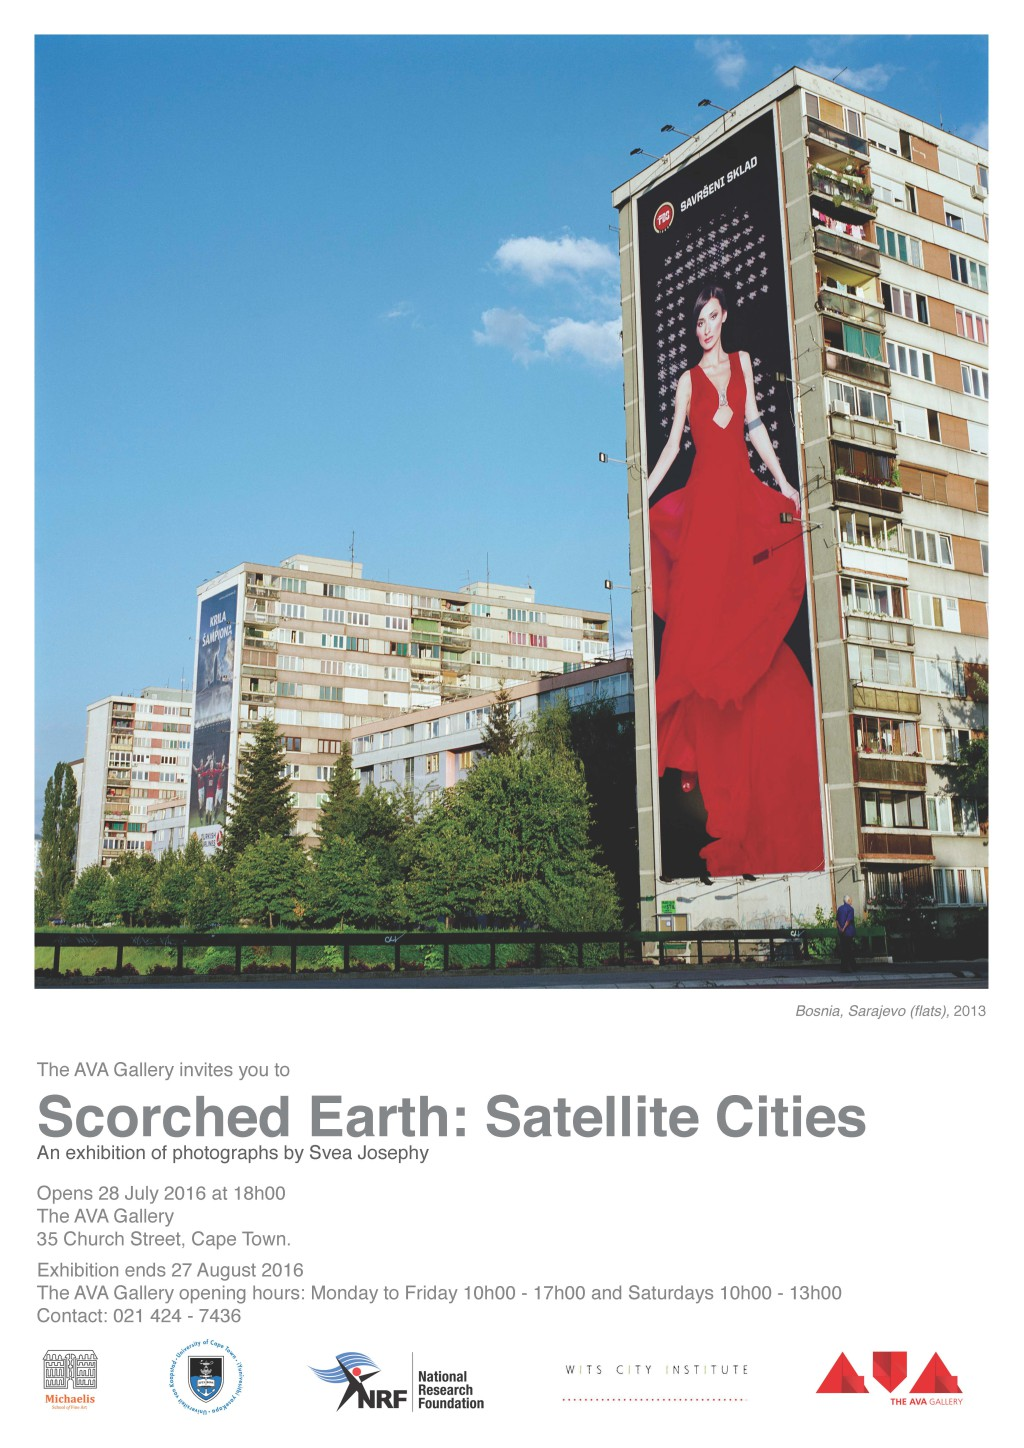 Satellite Cities by Svea Josephy